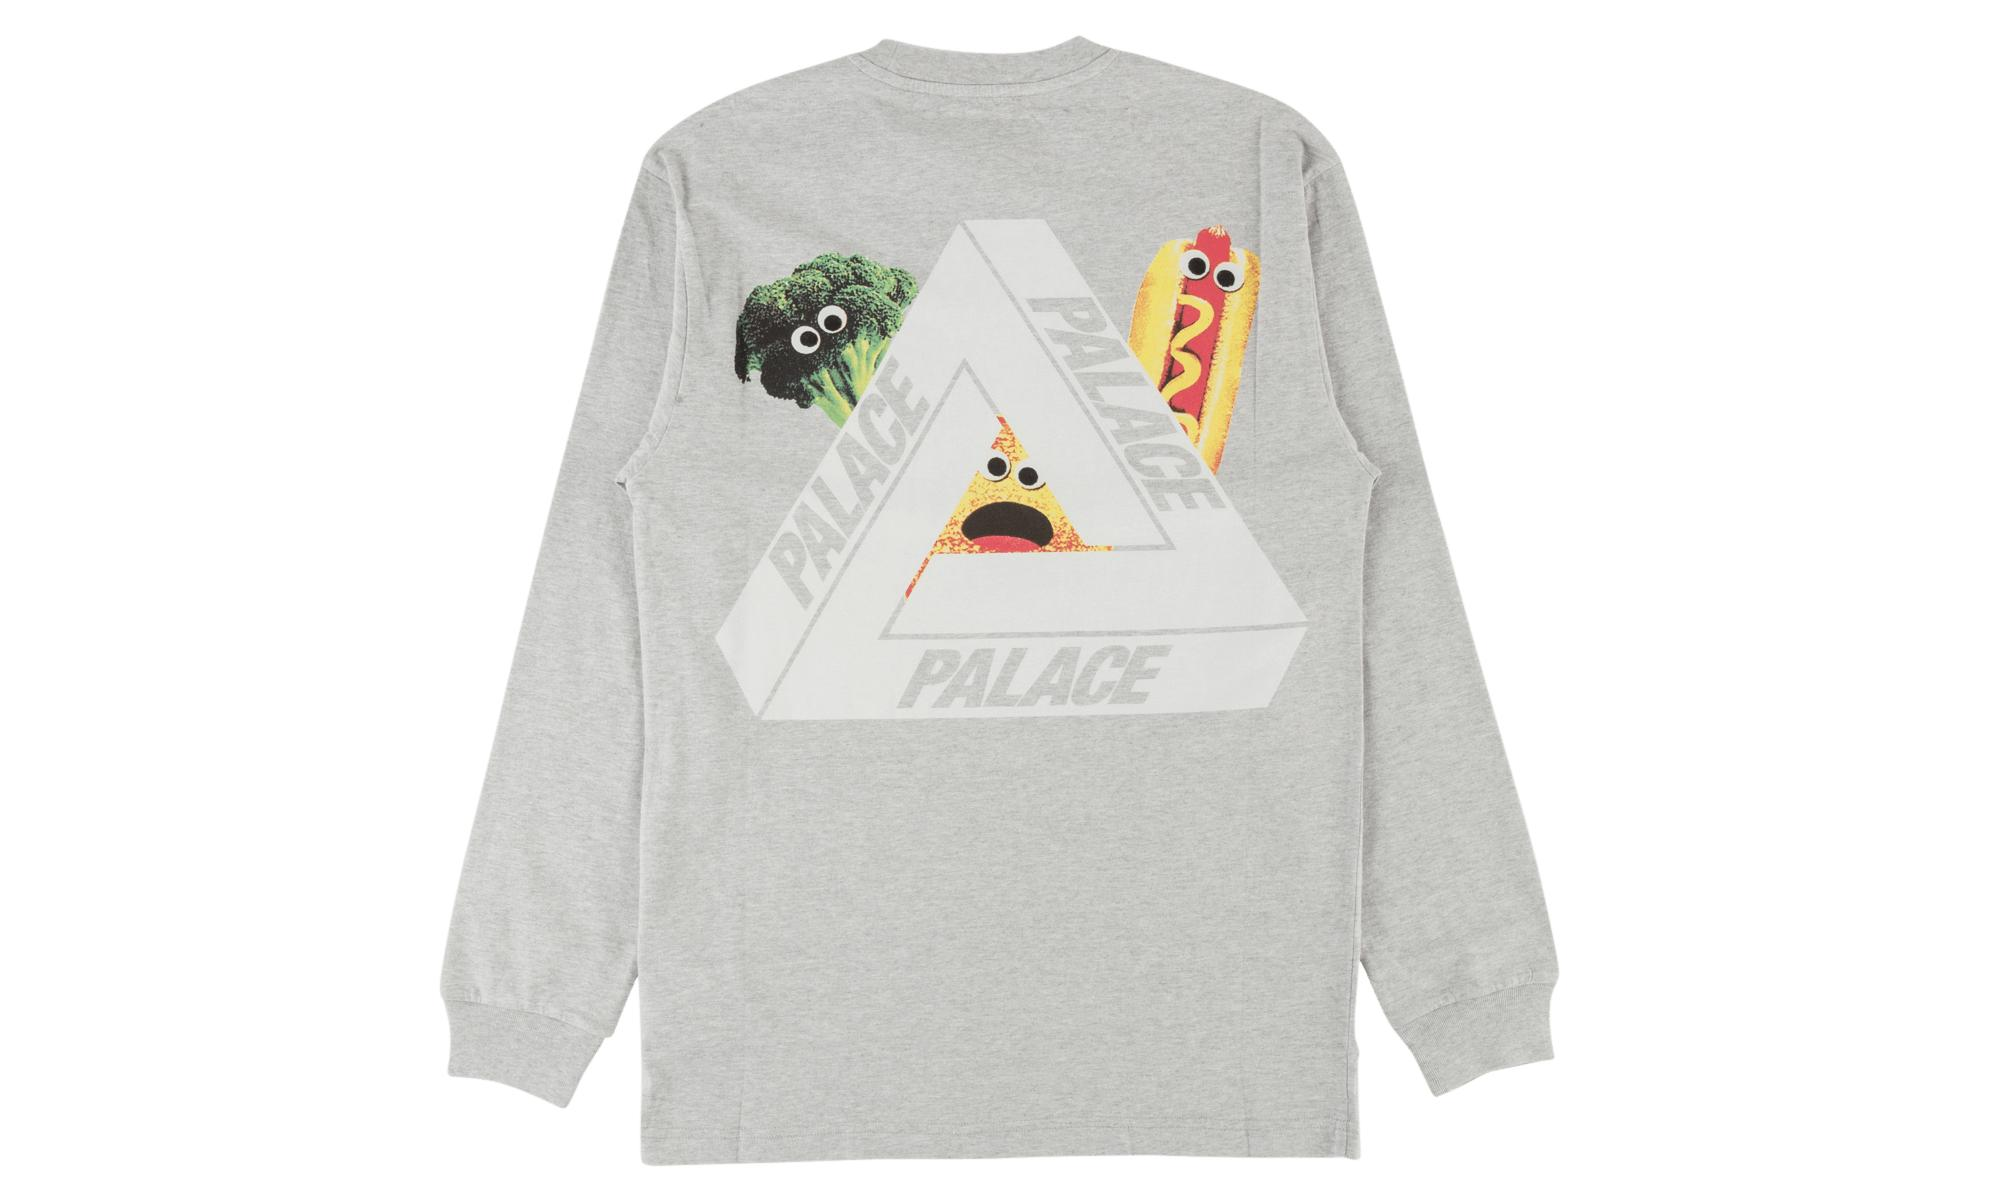 86ff5aa3dfab Palace - Gray Payne Longsleeve for Men - Lyst. View fullscreen